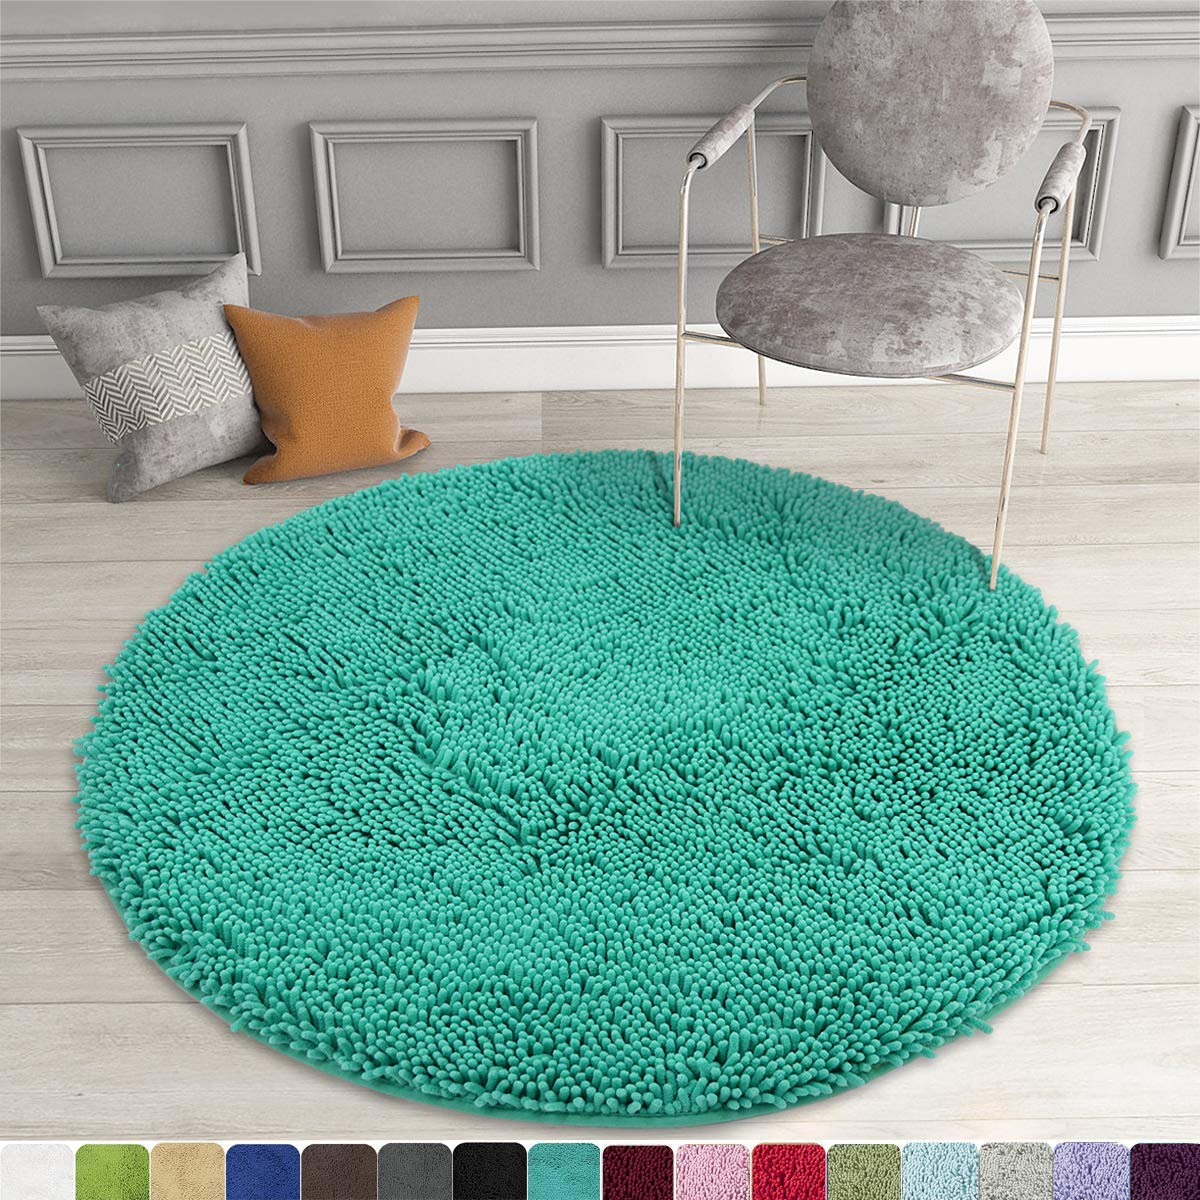 Mayshine Round Bath Mat Non Slip Chenille 3 Feet Shaggy Bathroom Rugs Extra Soft And Absorbent Perfect Plush Carpet For Living Room Bedroom Machine Wash Dry Turquoise